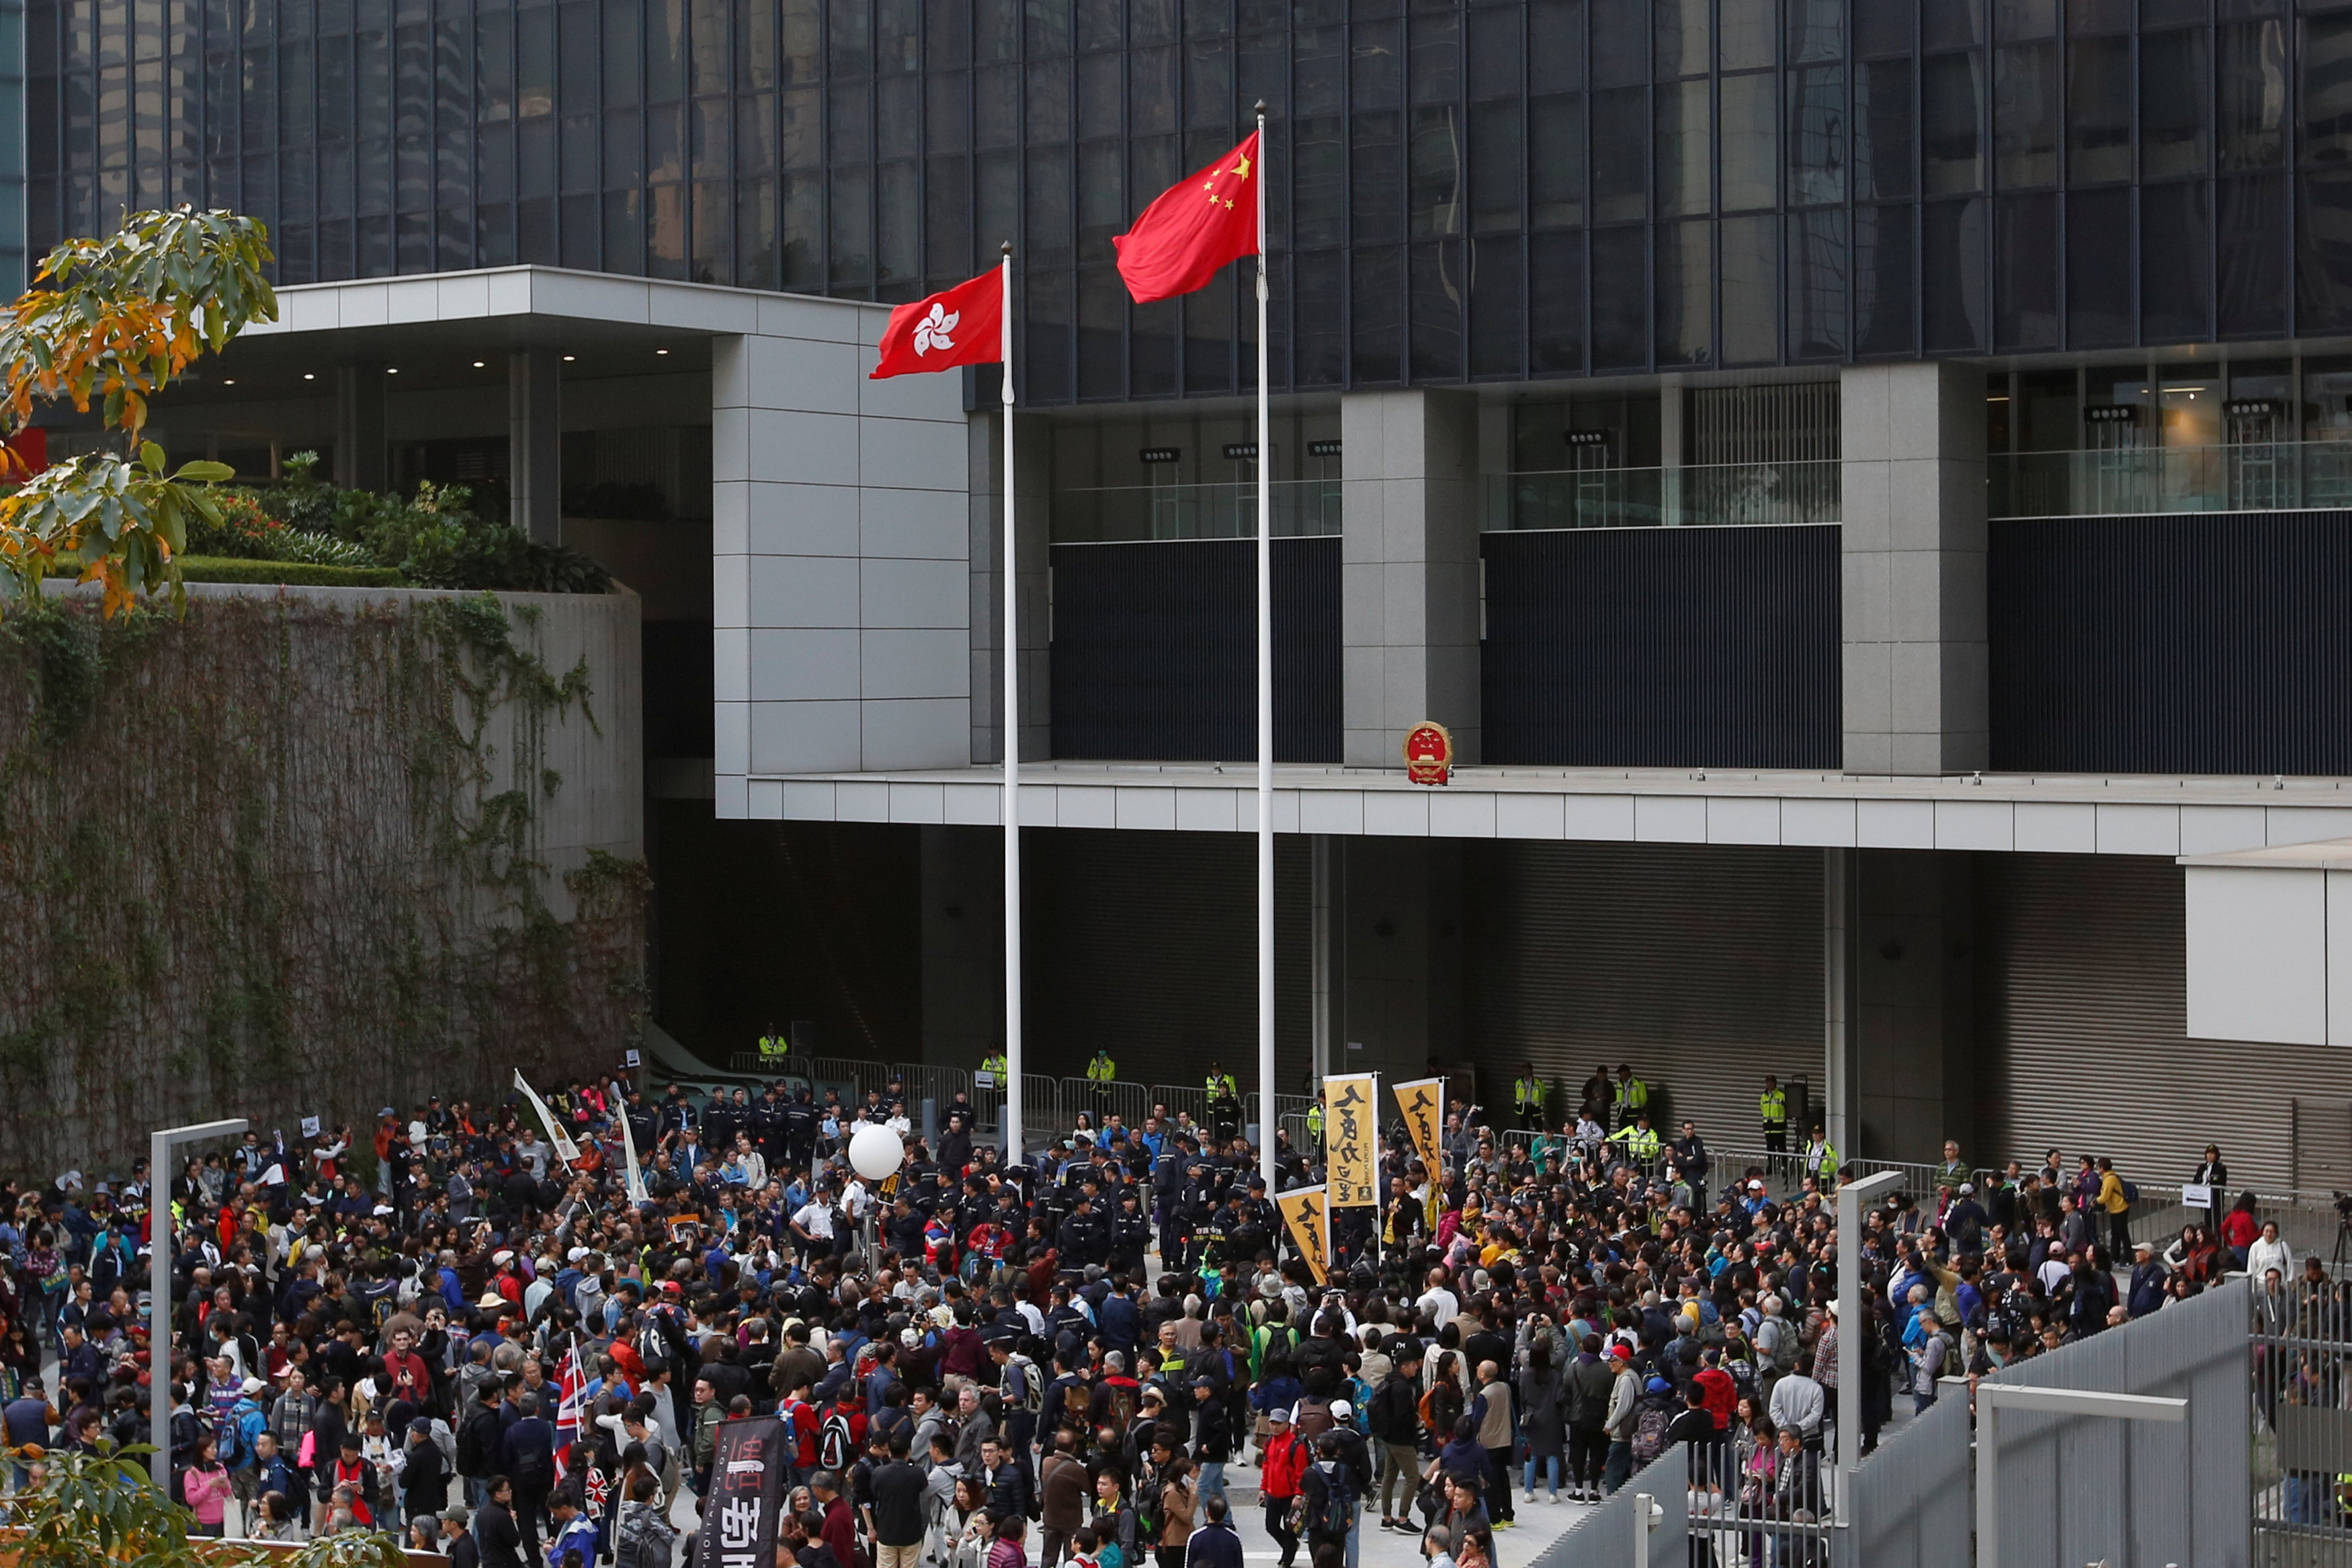 After Tough Year, Hong Kong Democracy Protesters Warn China on New Year's Day